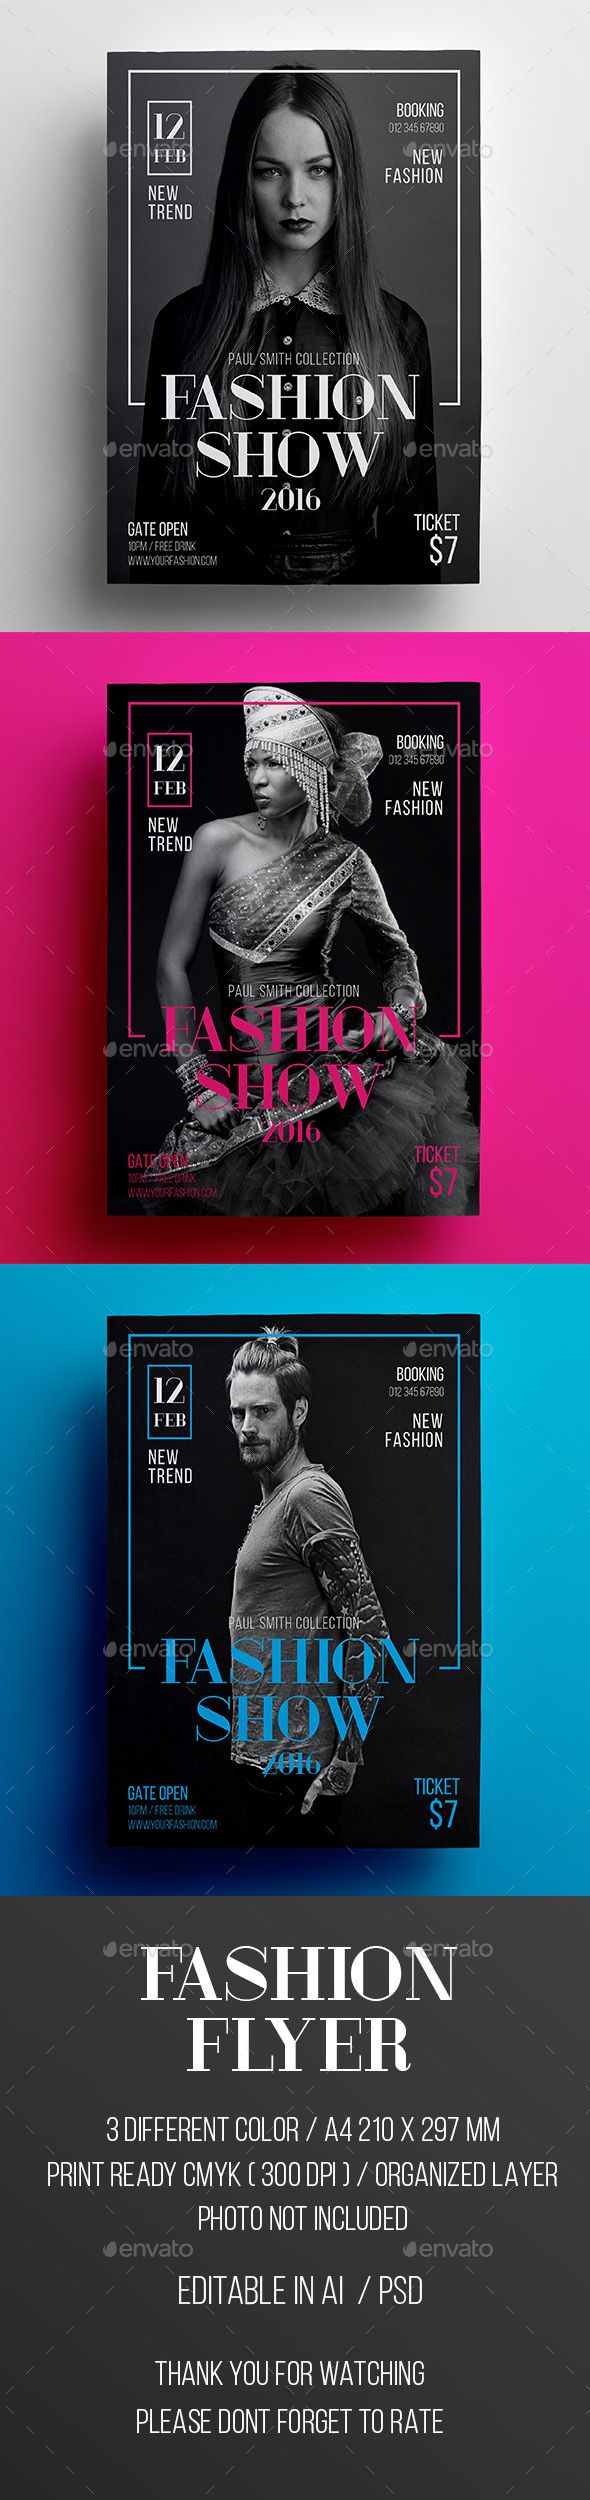 Fashion Show Flyer Template PSD, Vector AI #design Download: http://graphicriver.net/item/fashion-show-flyer/14221823?ref=ksioks